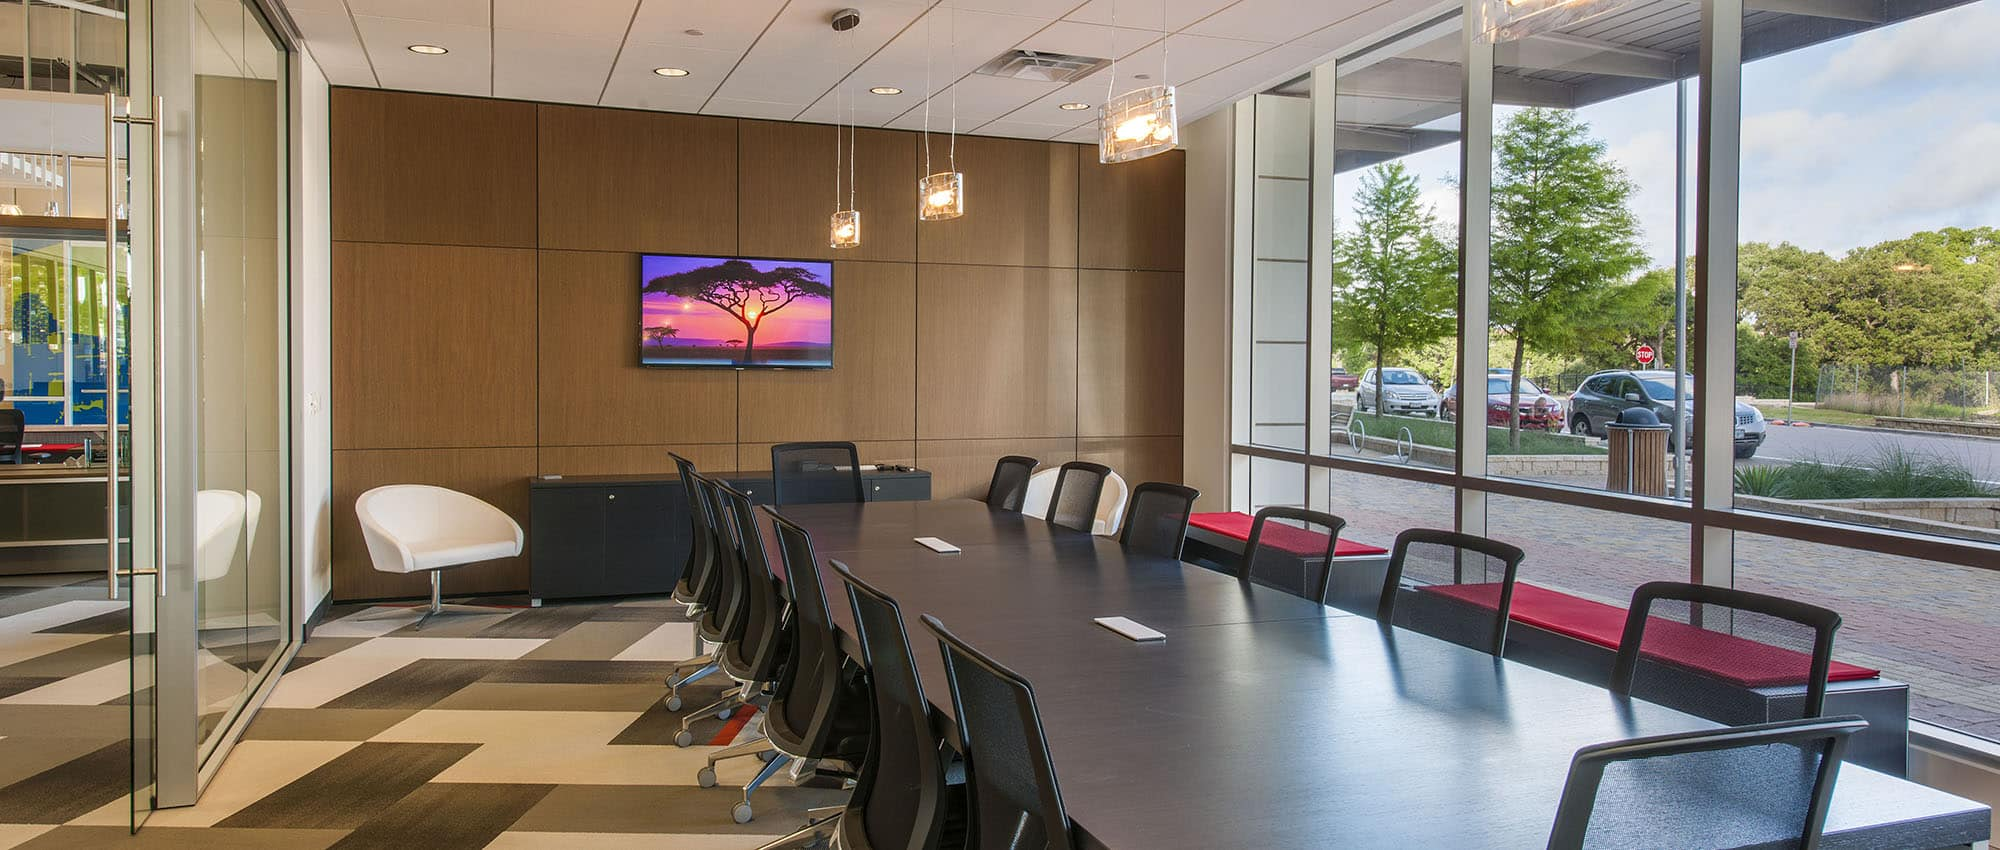 Value Engineering: Definition & How to Save Money On Office Build-Outs